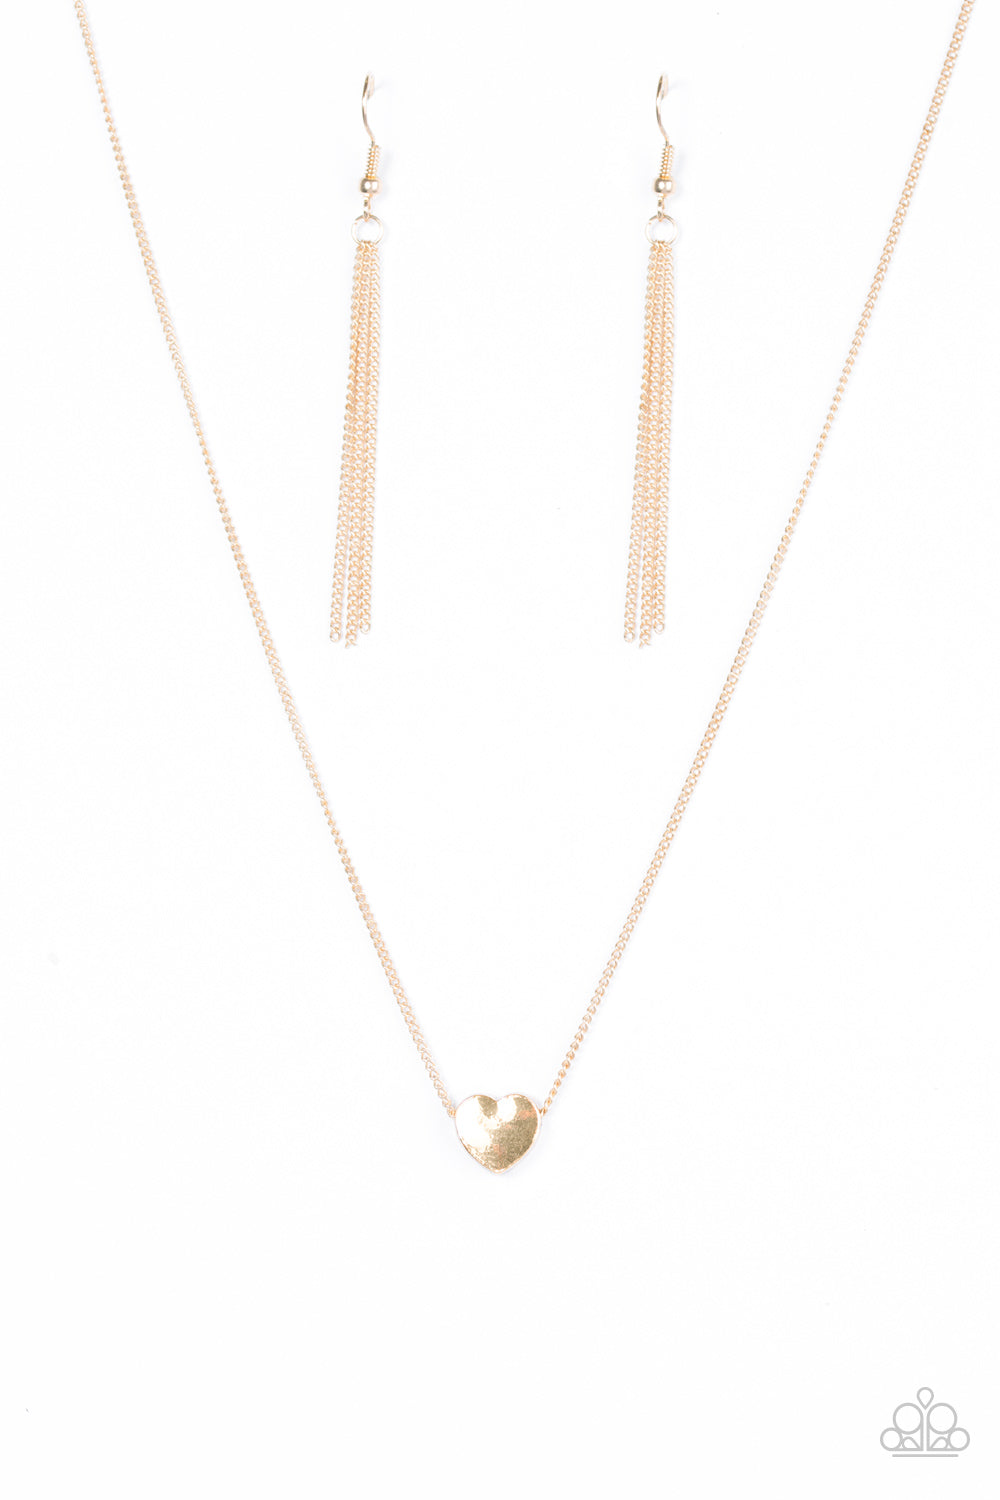 five-dollar-jewelry-a-simple-heart-gold-necklace-paparazzi-accessories